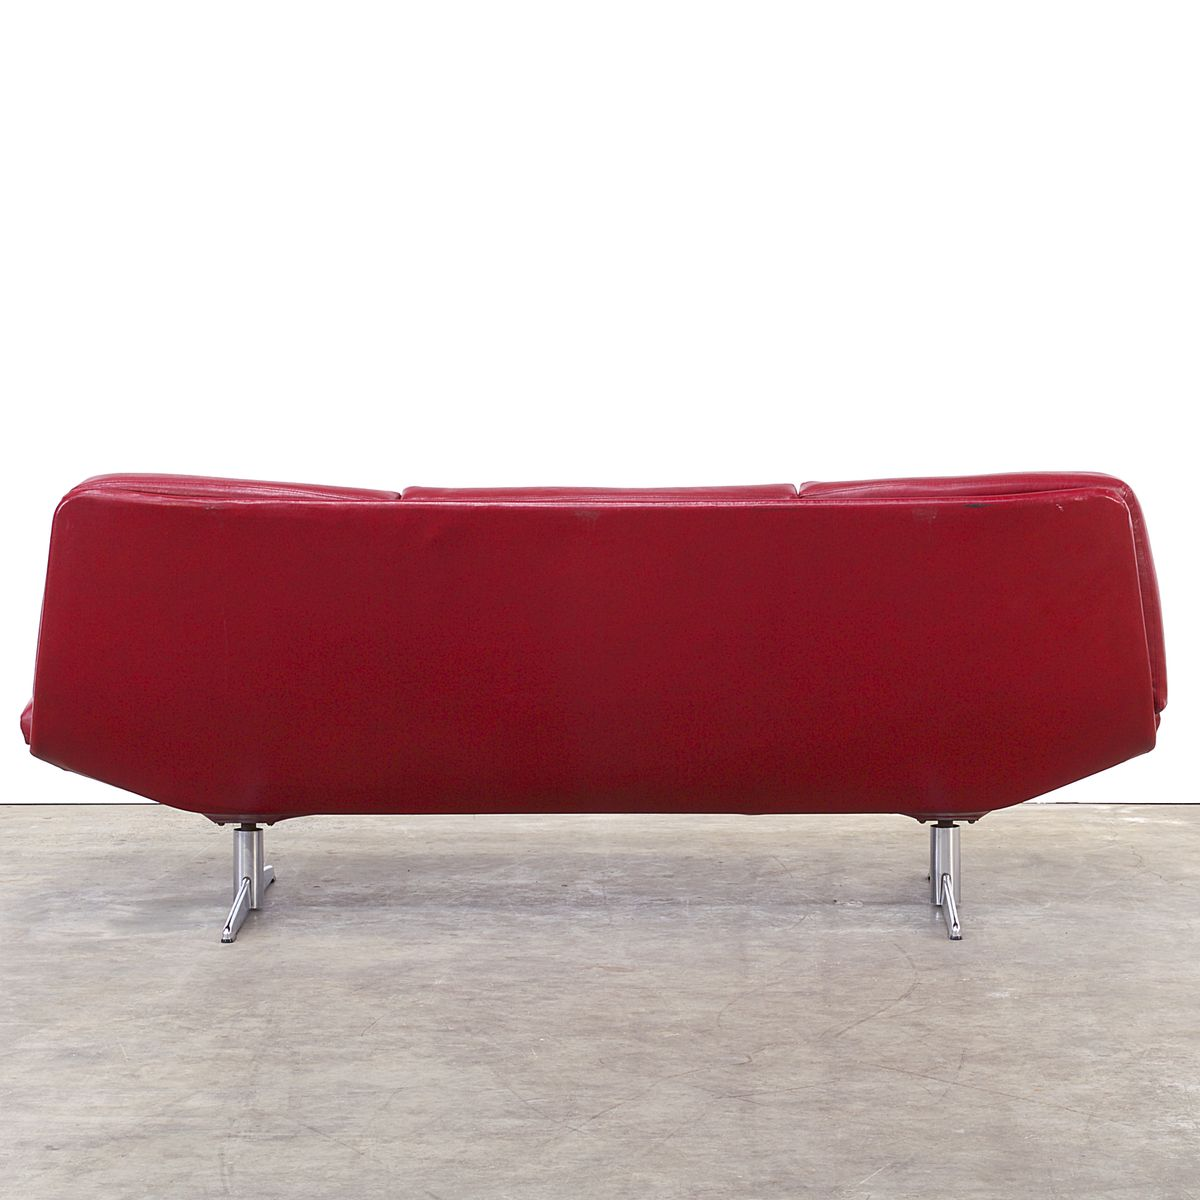 Canap rouge en ska 3 places 1960s en vente sur pamono - Canape rouge 3 places ...